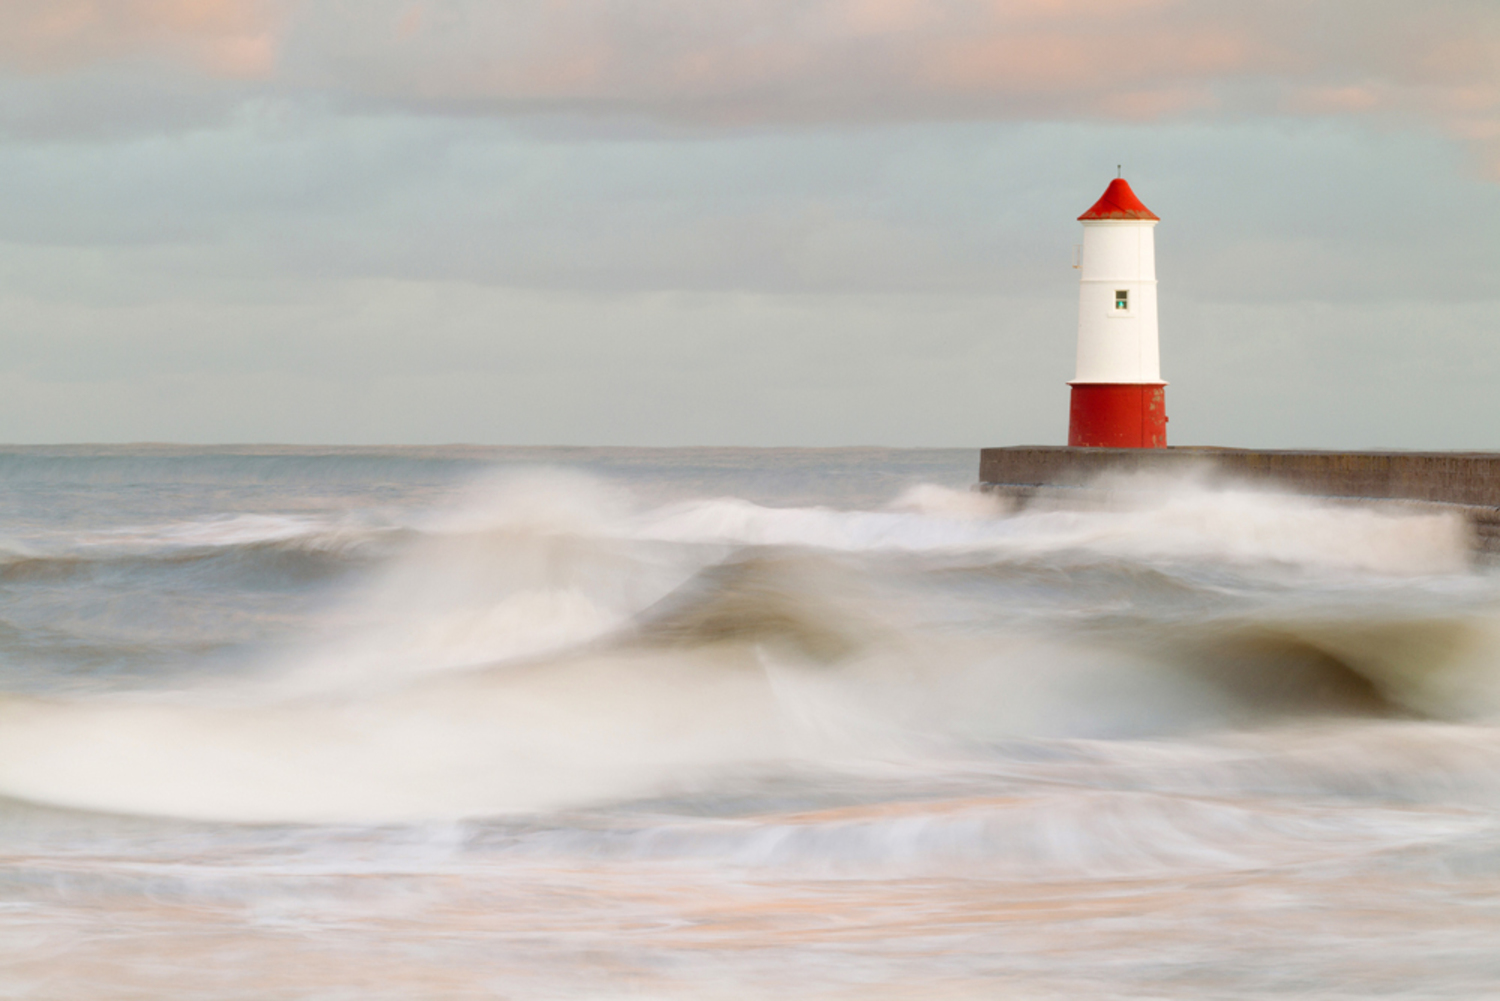 The Sea and the 'lighthouse'